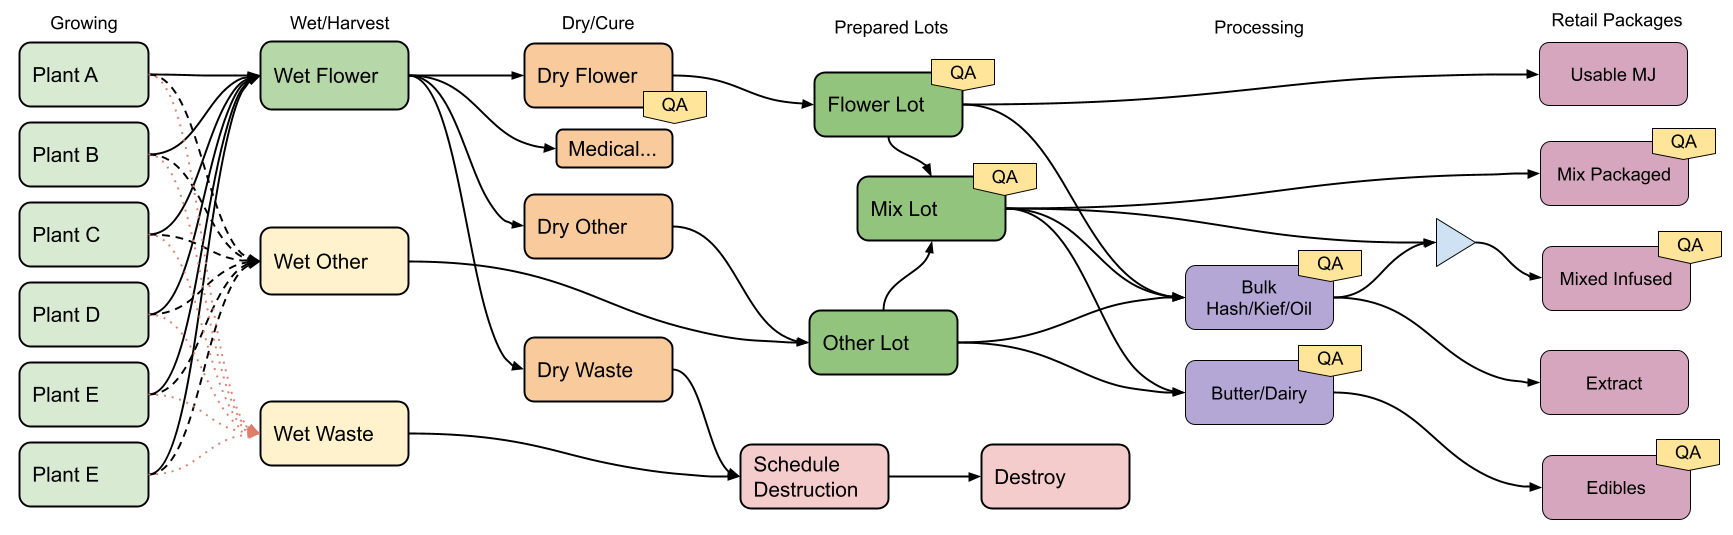 Flow Overview